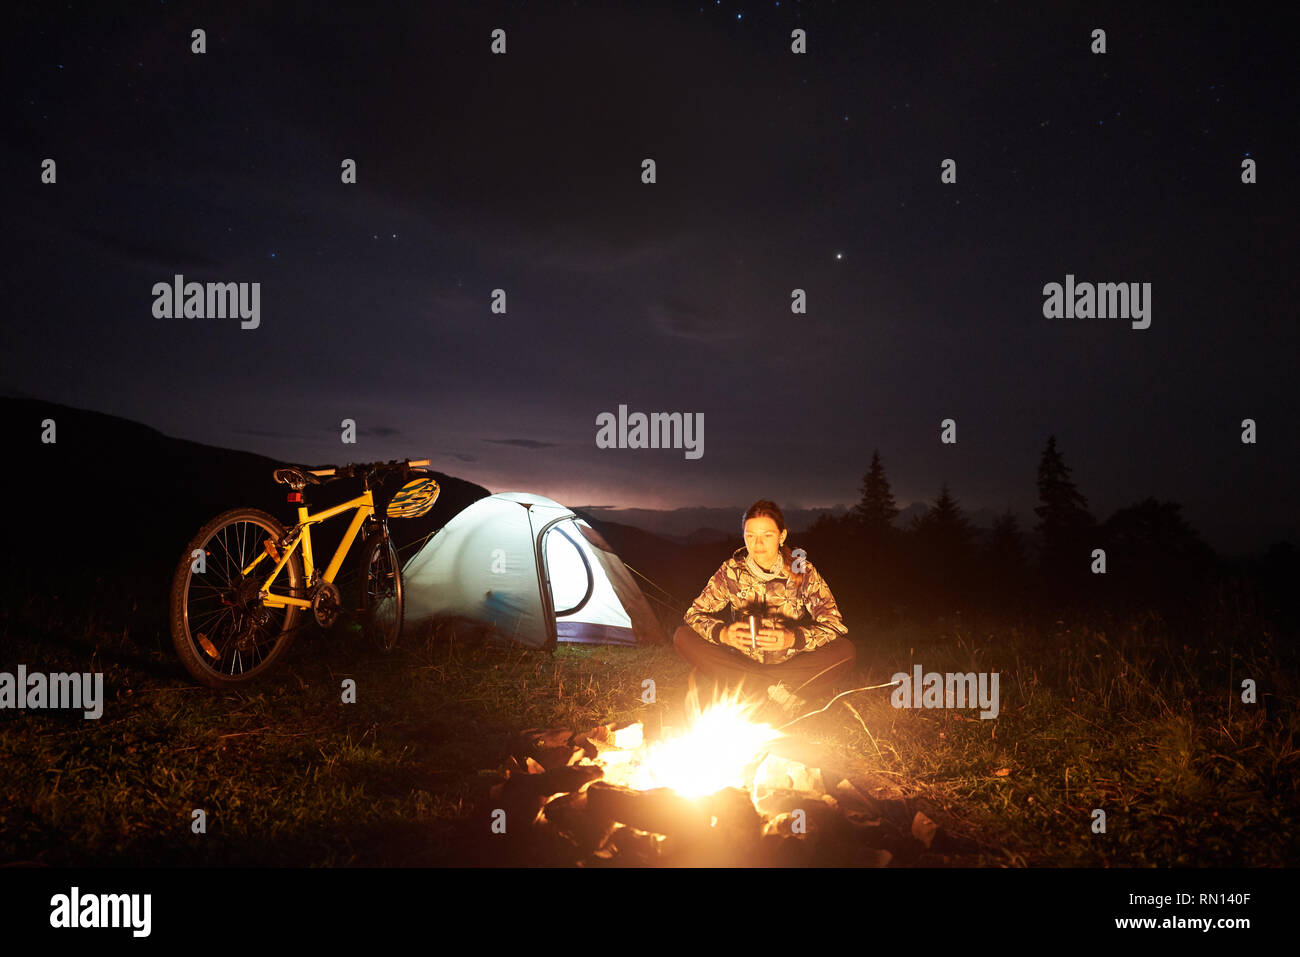 Young woman cyclist enjoying at night camping near burning campfire, illuminated tourist tent, mountain bike under beautiful evening sky full of stars. Outdoor activity and tourism concept - Stock Image